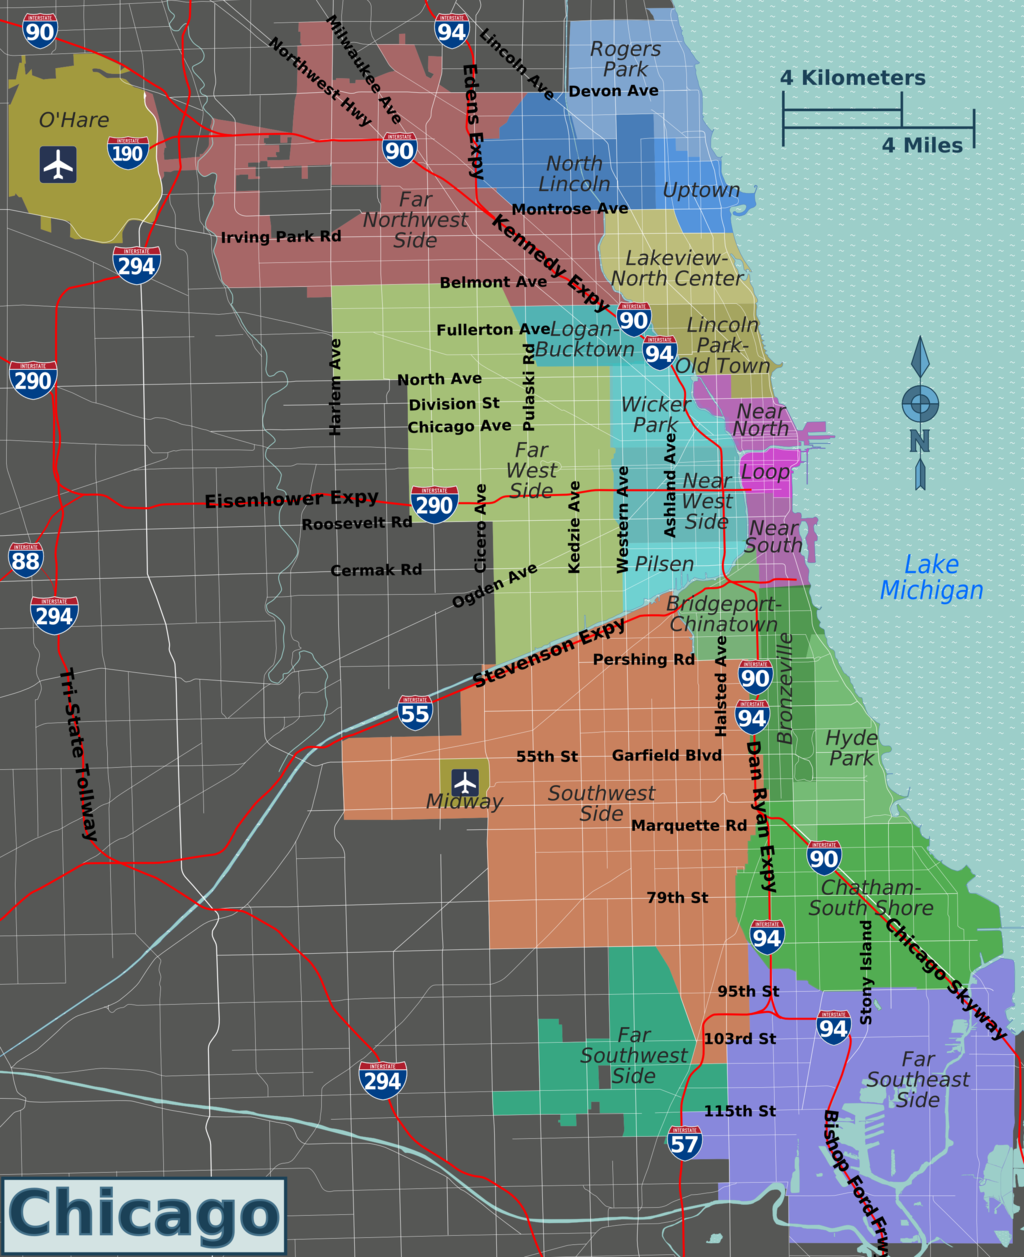 second city chicago map The Sides Of Chicago Simpler Than A Map Of Neighborhoods